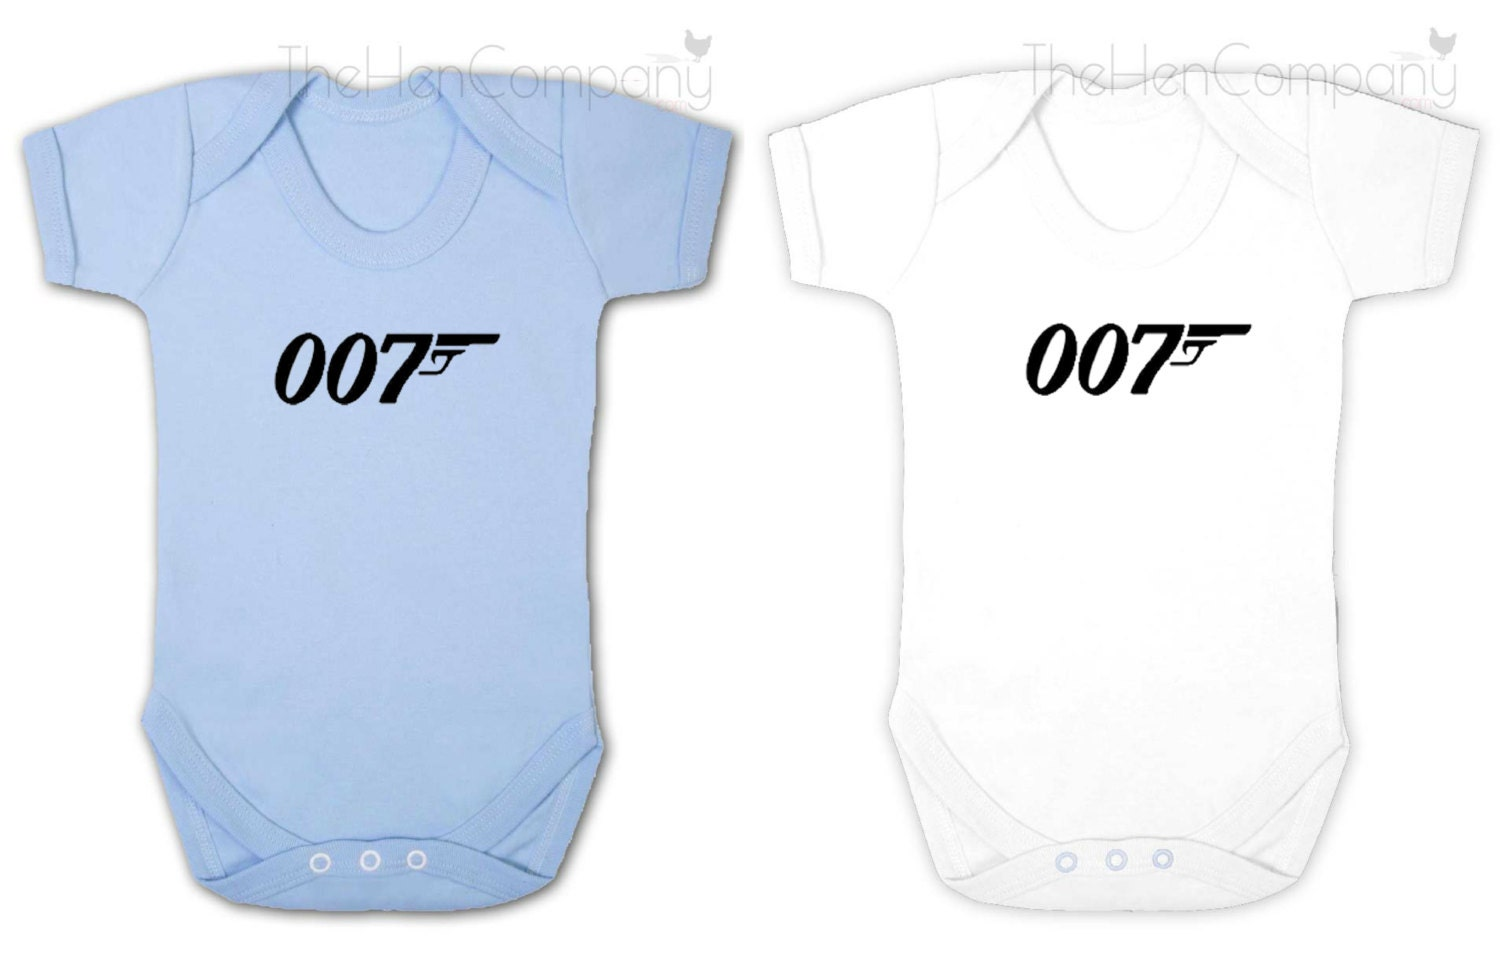 007 Babygrow Retro Bodysuit Boys Clothes James Bond Babygrow Baby Boy Clothes Baby Boy Gift Blue